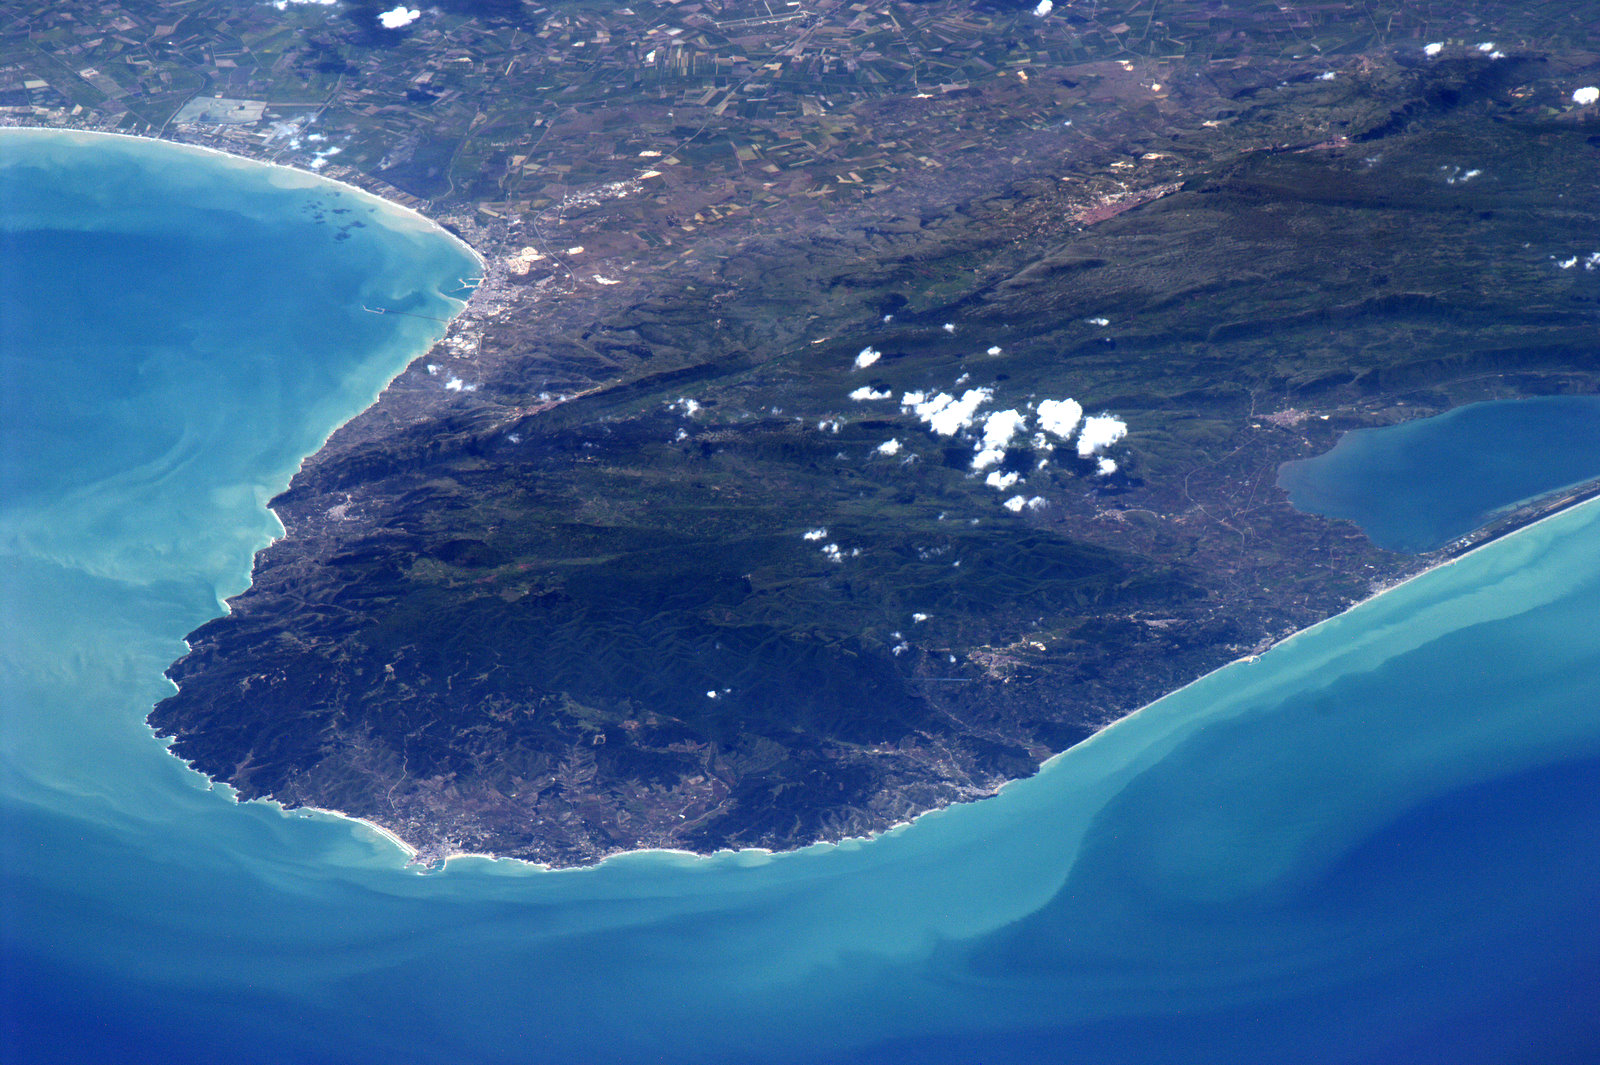 http://upload.wikimedia.org/wikipedia/commons/e/e4/Gargano_da_ISS.jpg